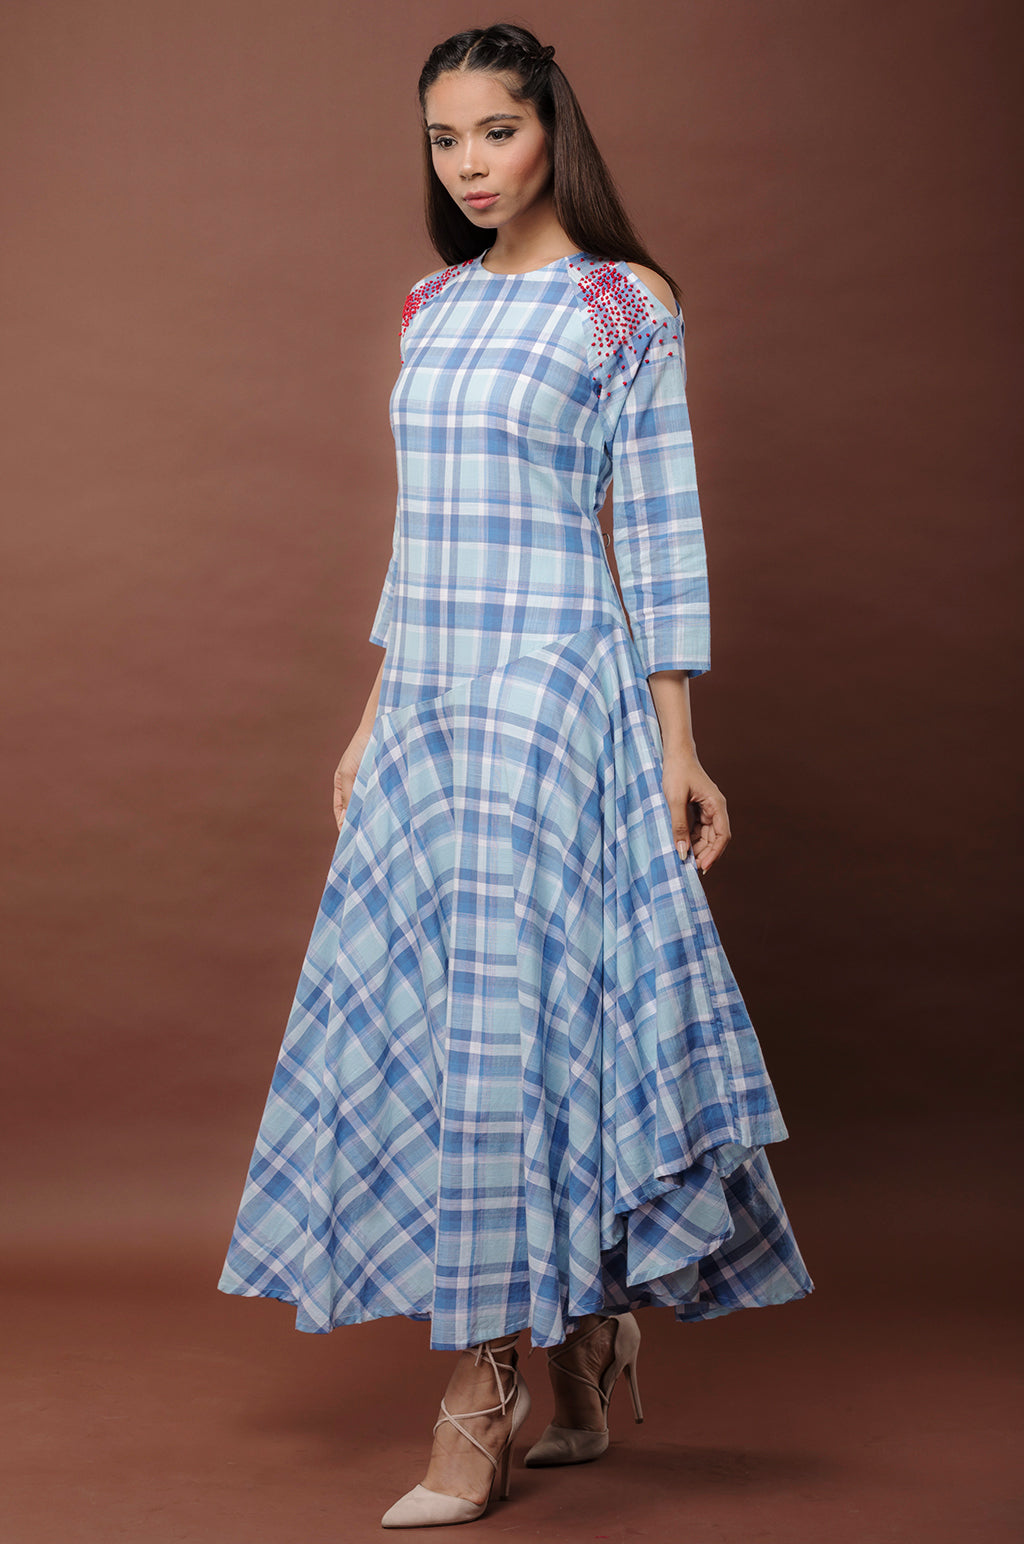 Woven checks cold shoulder long maxi dress fashion hand embroidery french knot online shopping buy at best discount price cash on delivery COD available in India. International shipping. handmade by local artisans. fashion formal dress. designer wear. occasion wear. fashion trends 2018 blue checks asymmetrical hemline flowy dress midi dress free shipping tredy range of casual dresses in various sizes plus sizes